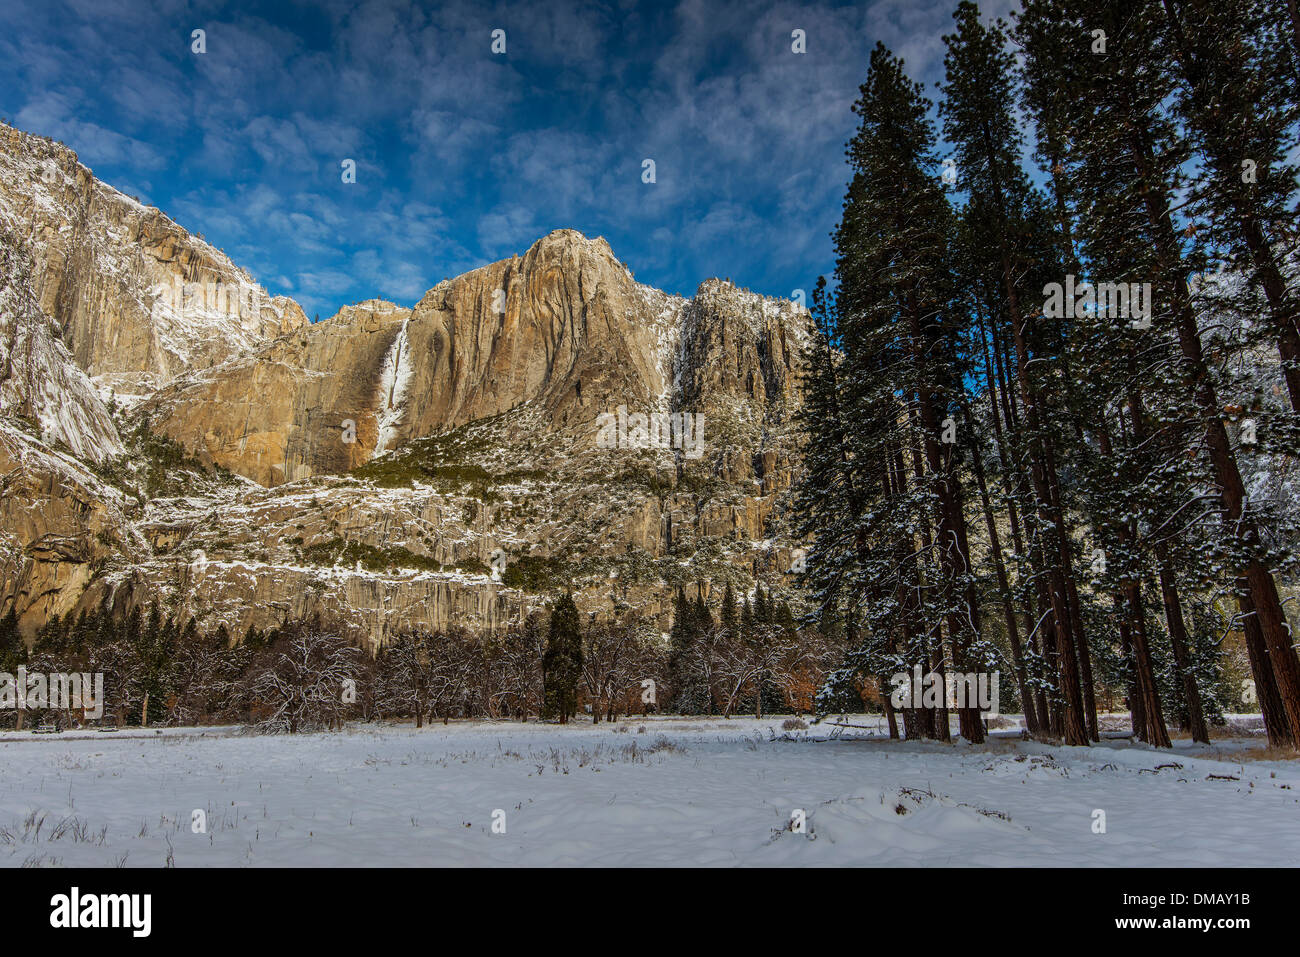 Winter view over frozen Yosemite Falls, Yosemite National Park, California, USA - Stock Image